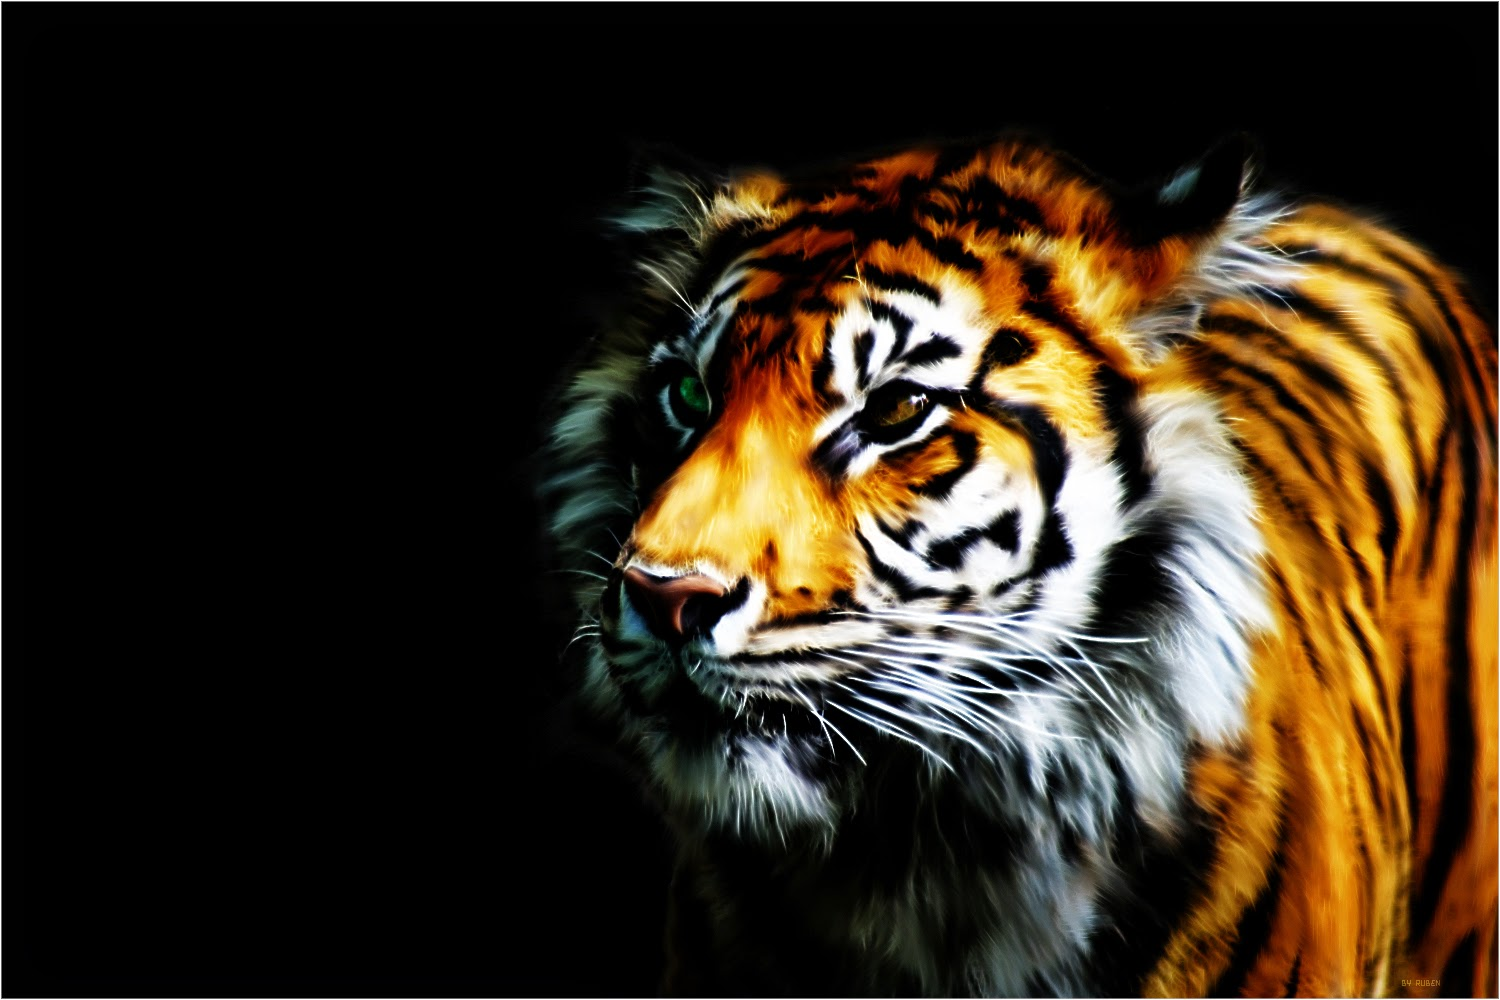 Collection Of Best Animal Wallpapers: HD Wallpapers, Free High Definition Desktop Backgrounds